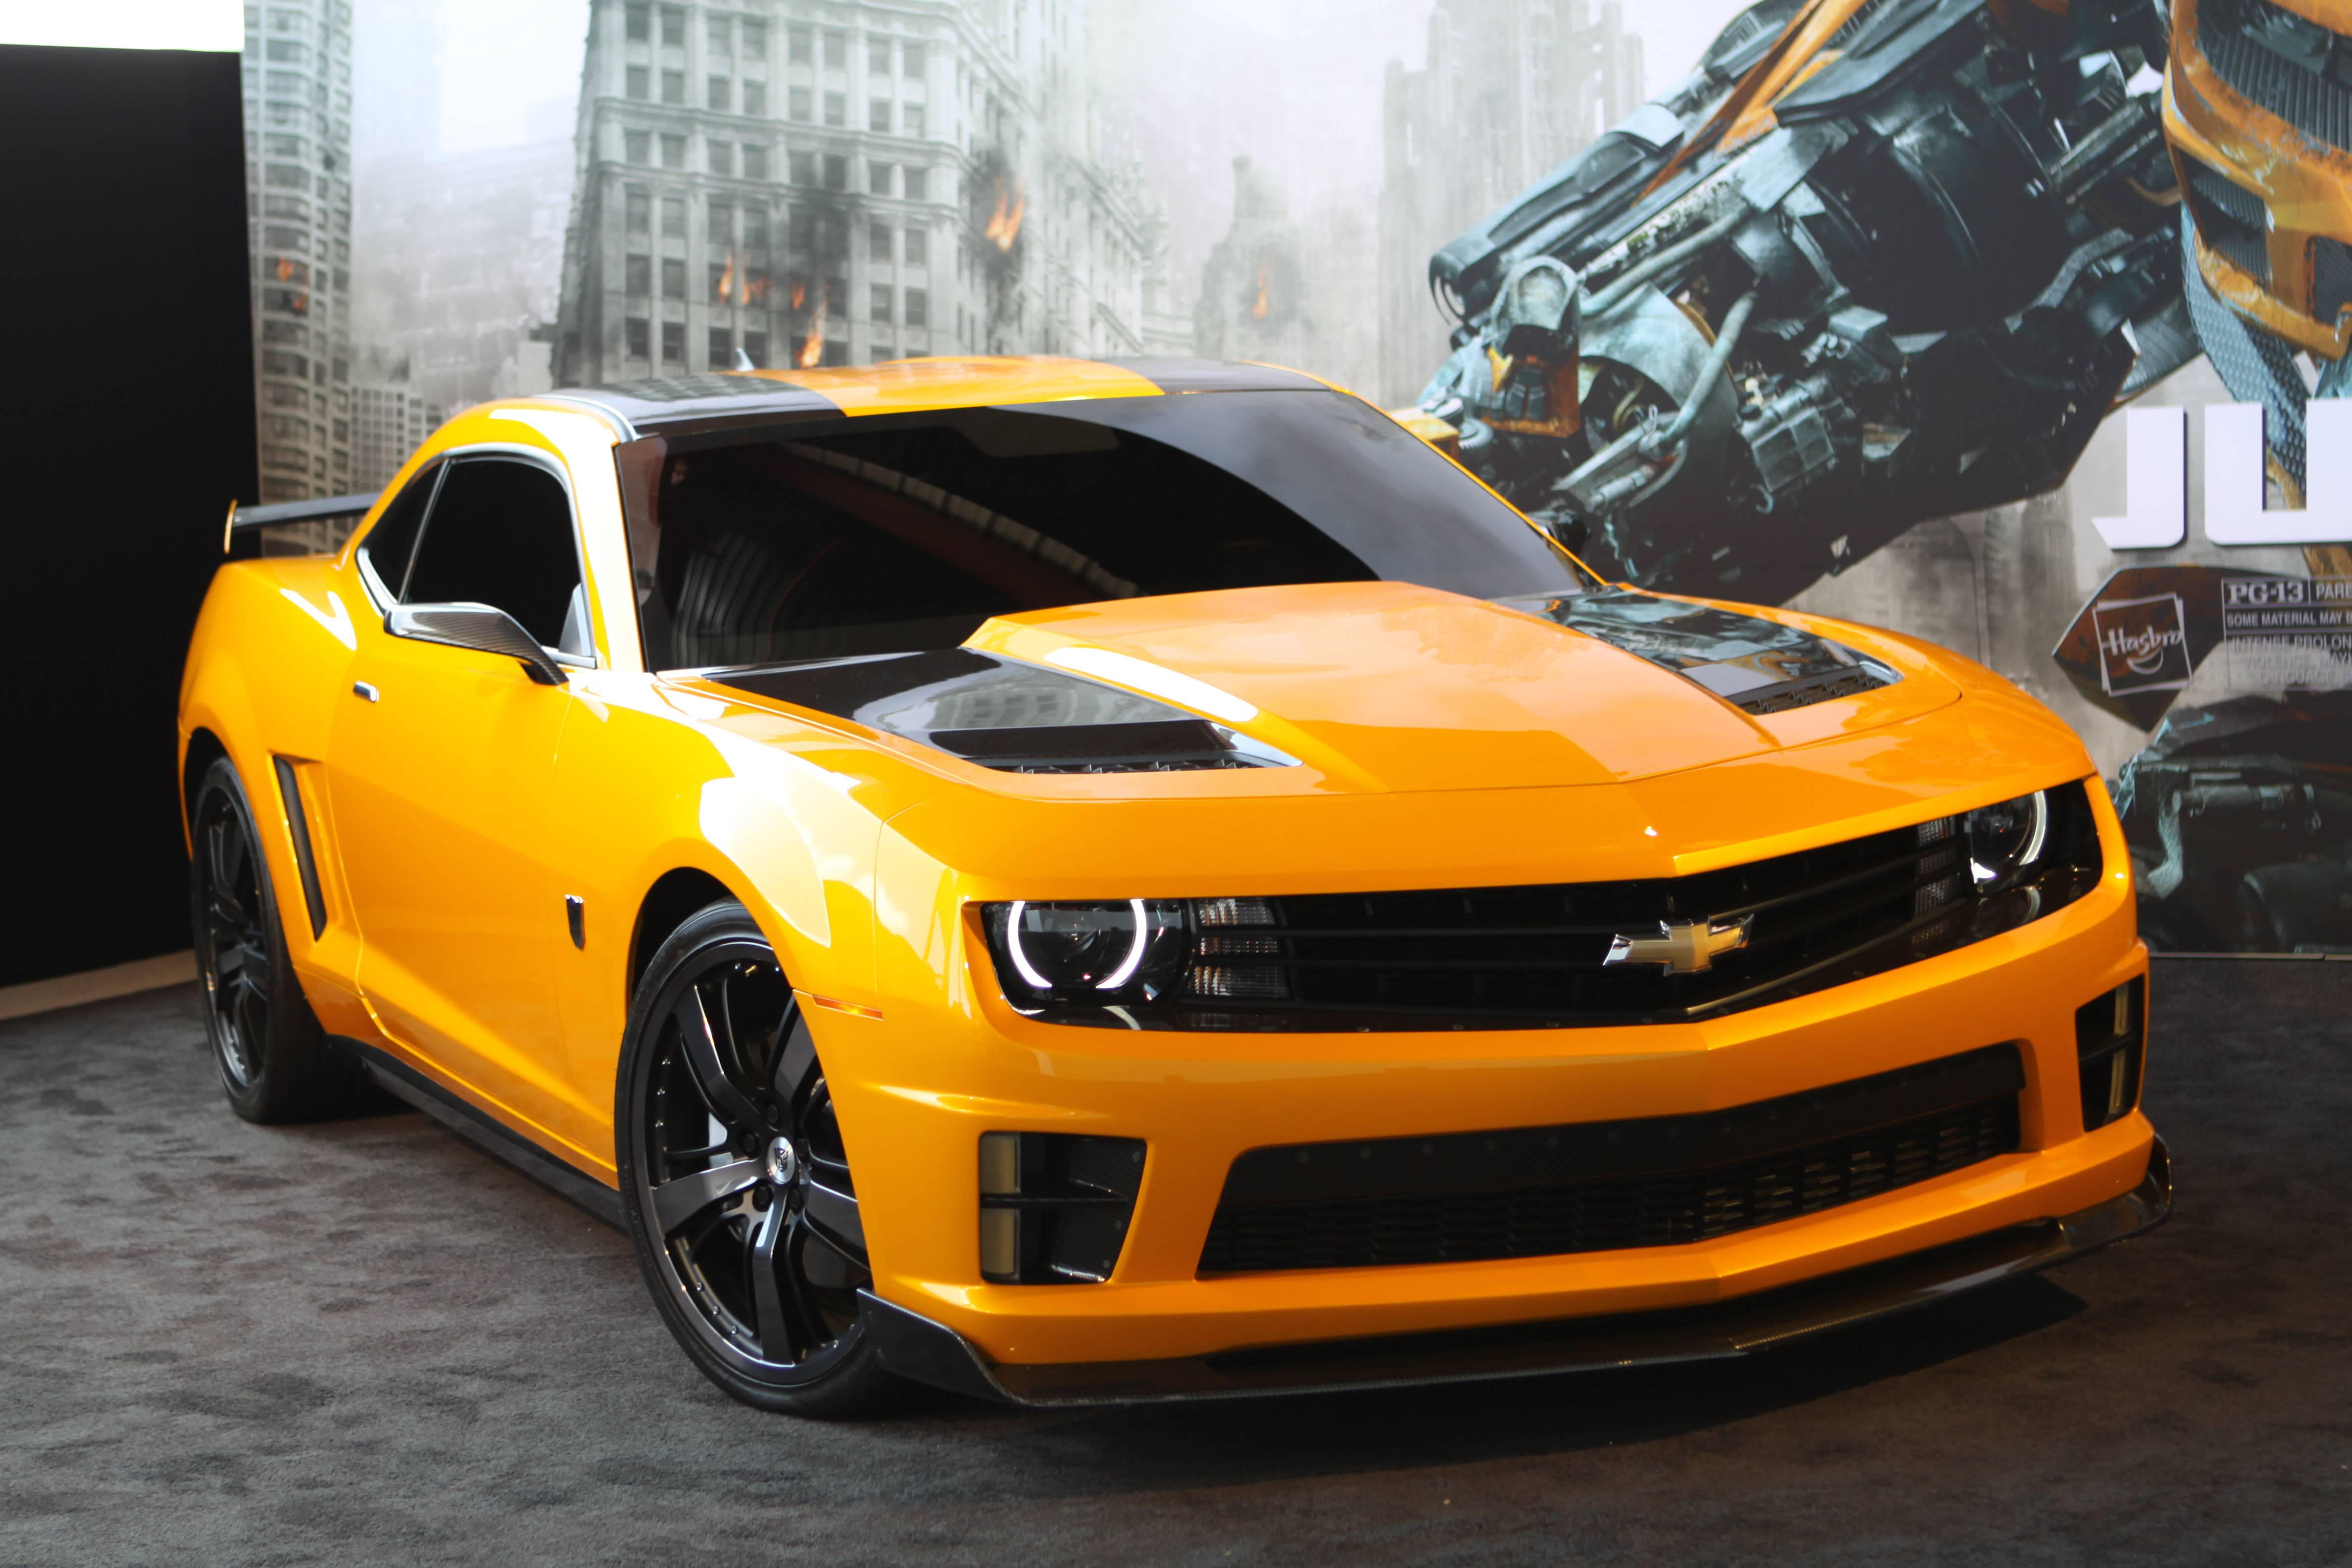 Wallpapers For Transformer Bumblebee Wallpaper